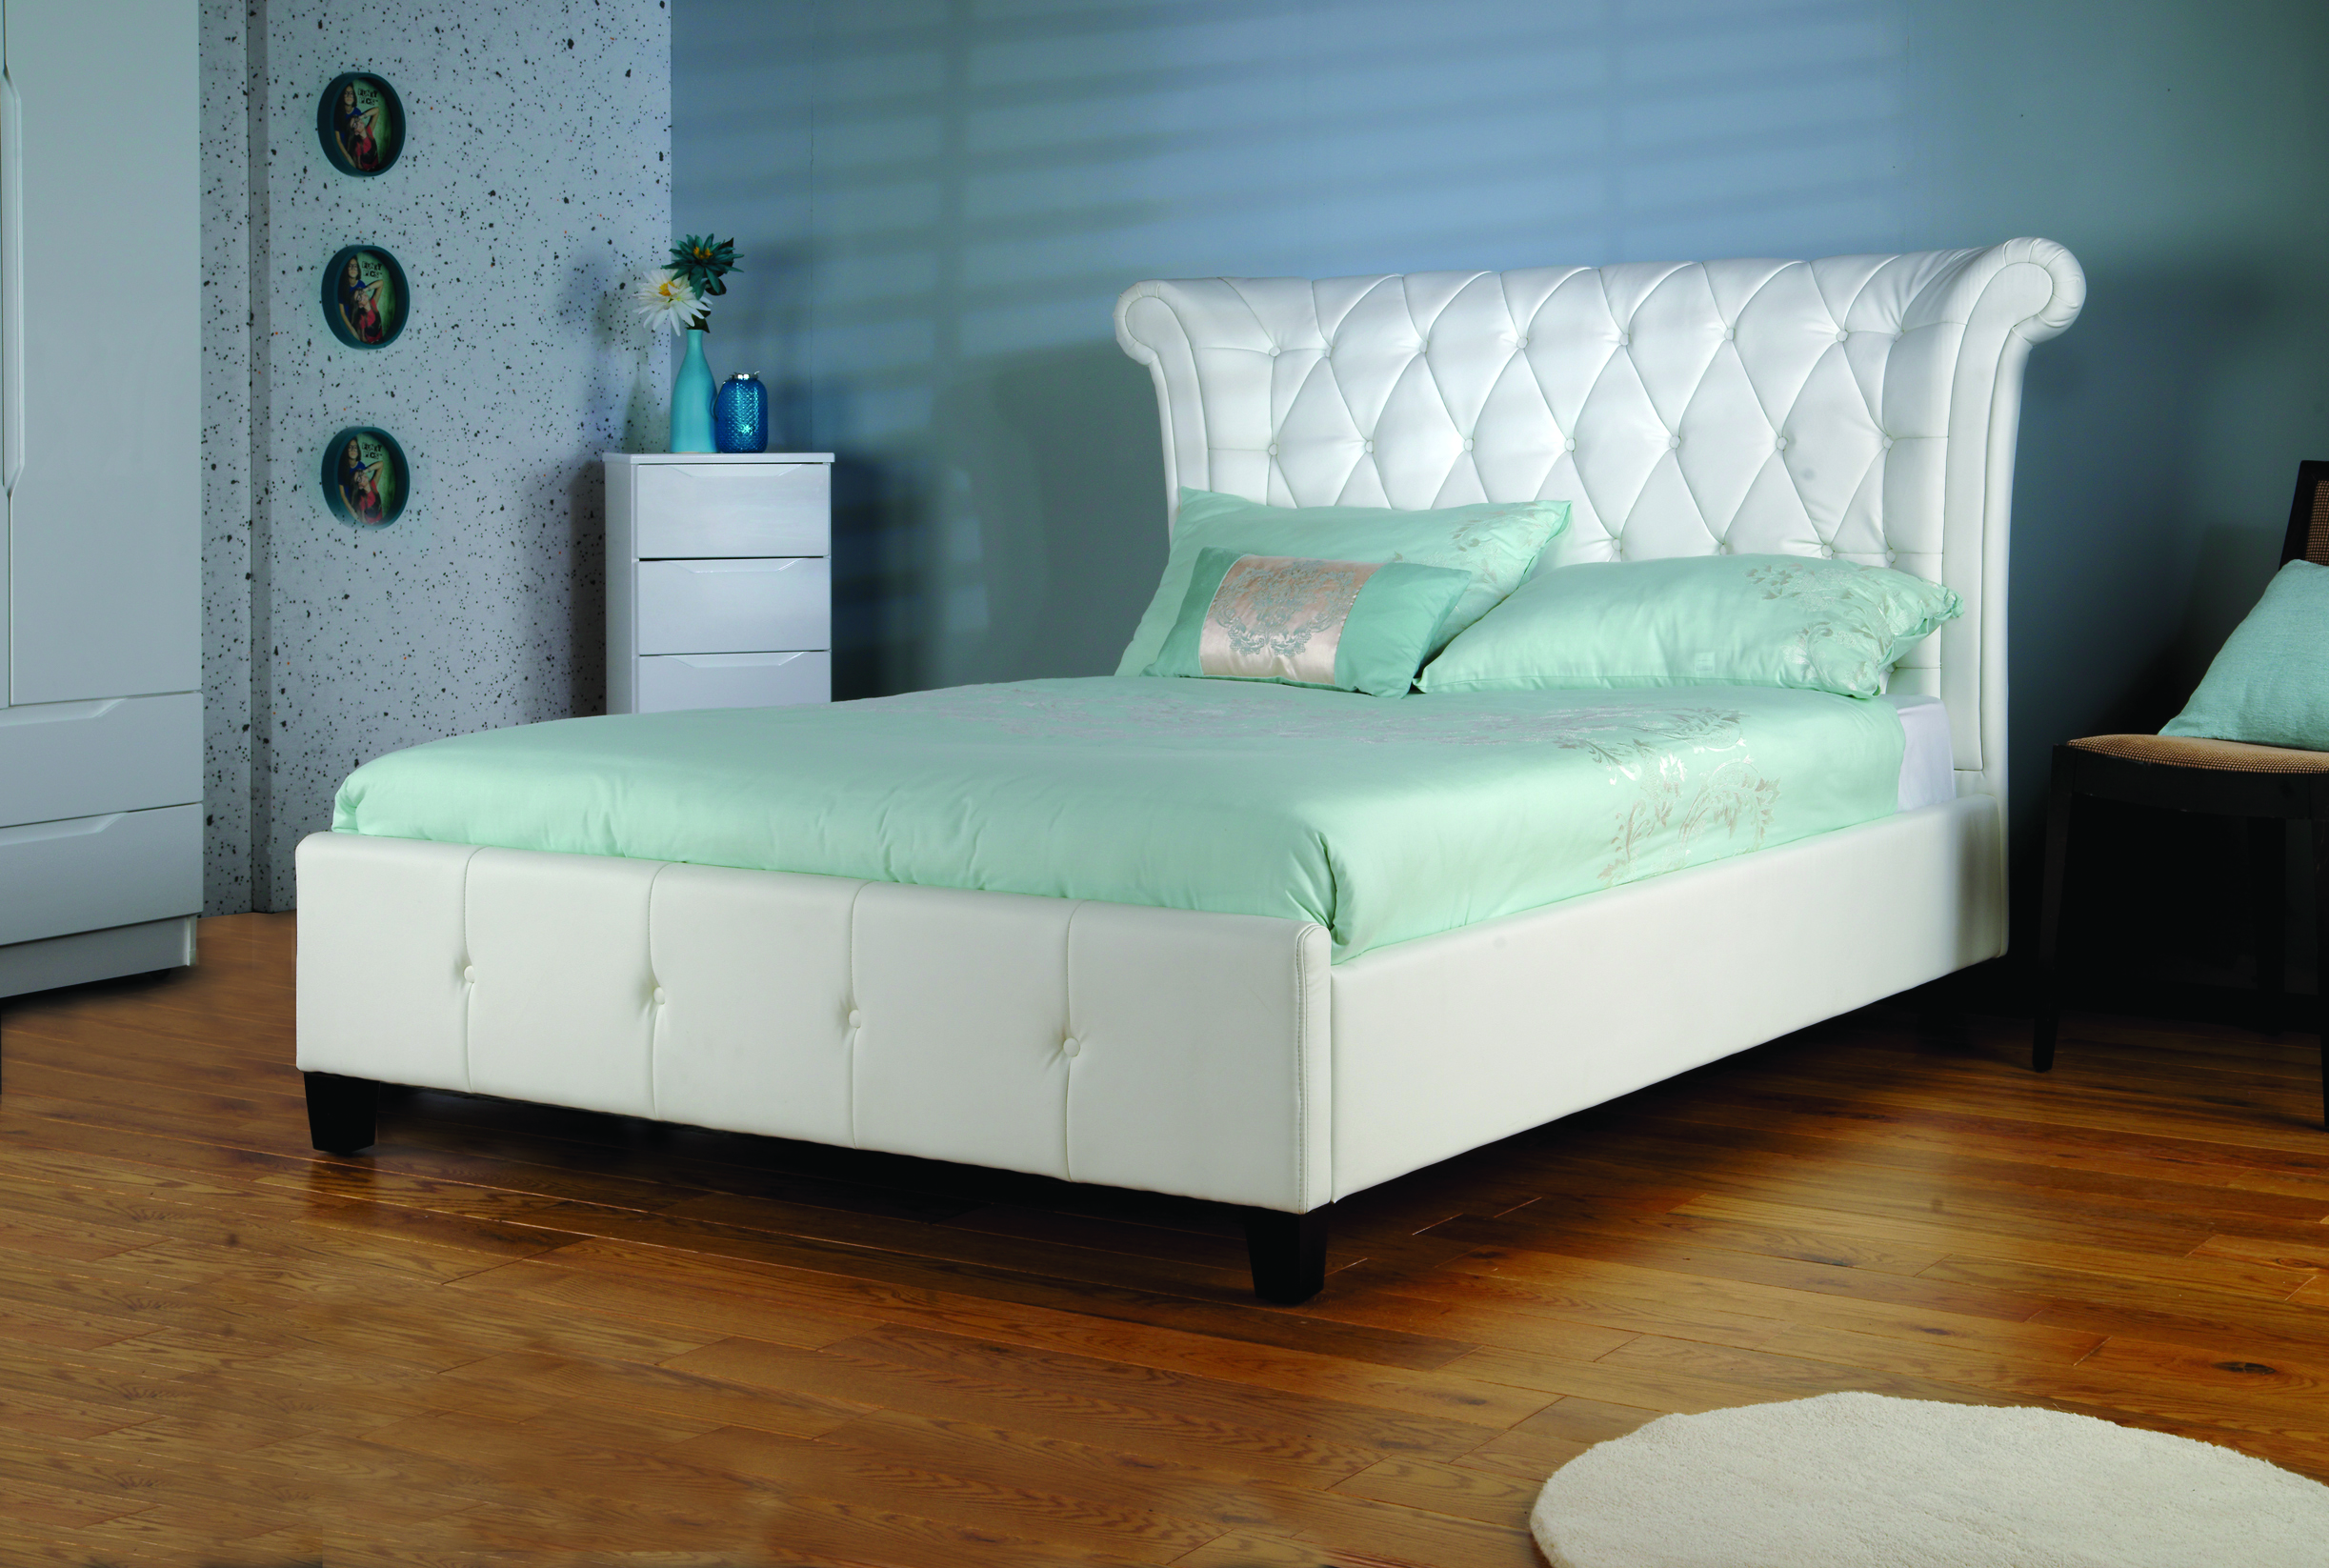 Beds & Mattresses Rapture New Faux Leather Brown 5ft Bed Frame Mattresses Available